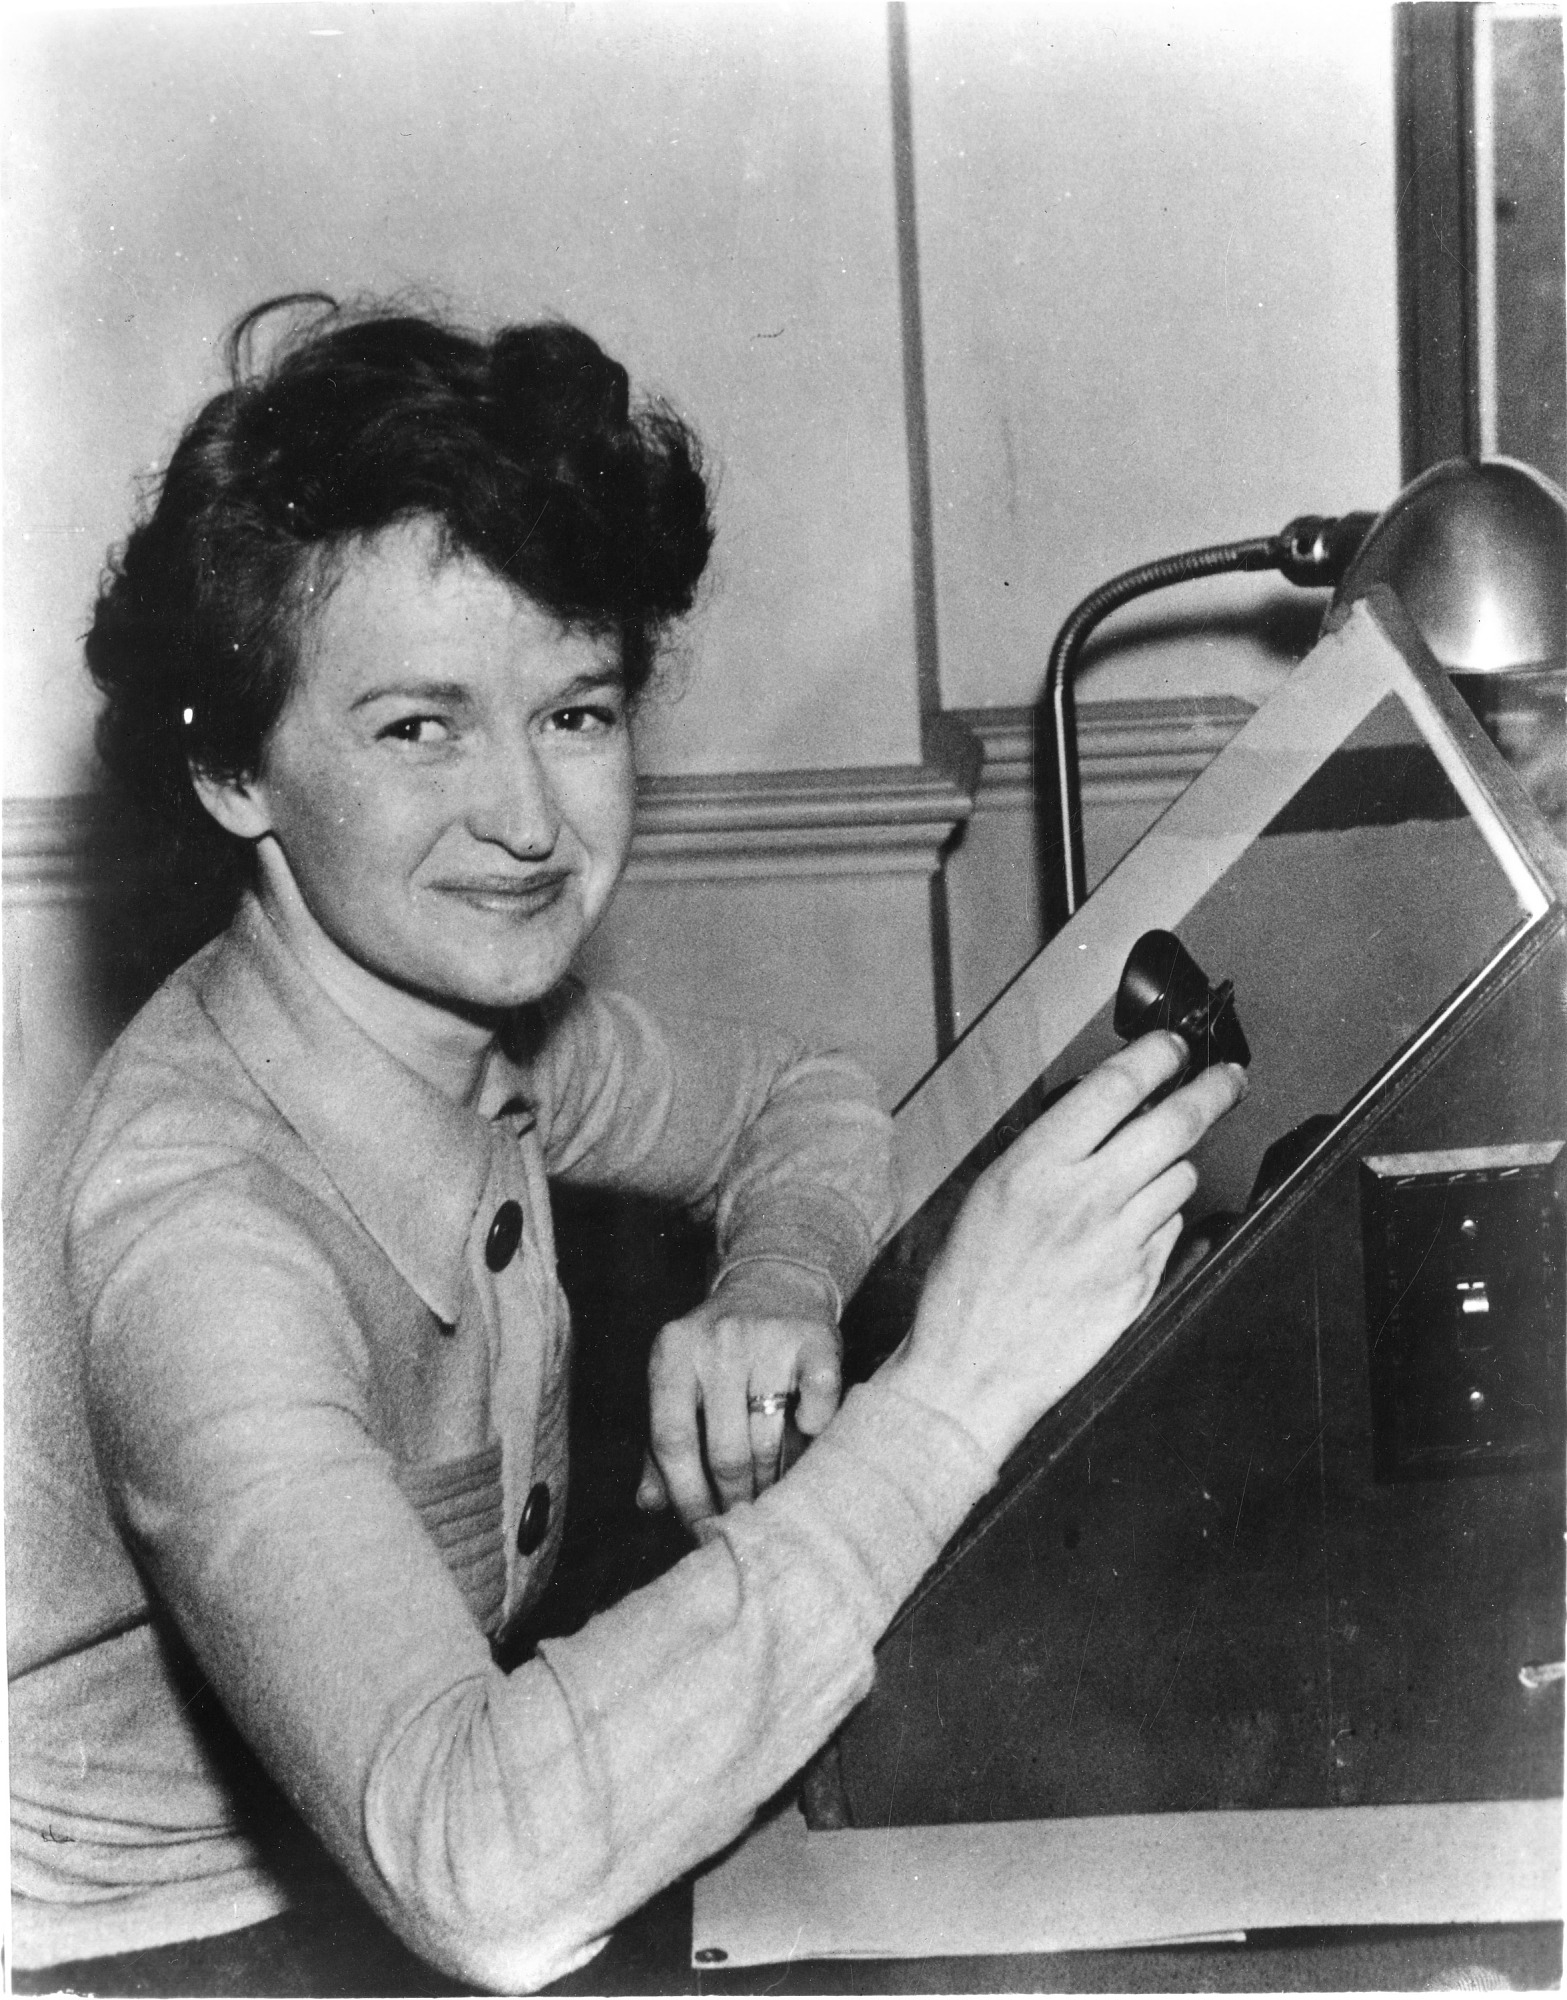 Muriel E. Mussells Seyfert (b. 1909), 1936, Smithsonian Institution Archives, SIA Acc. 90-105 [SIA2009-3191].